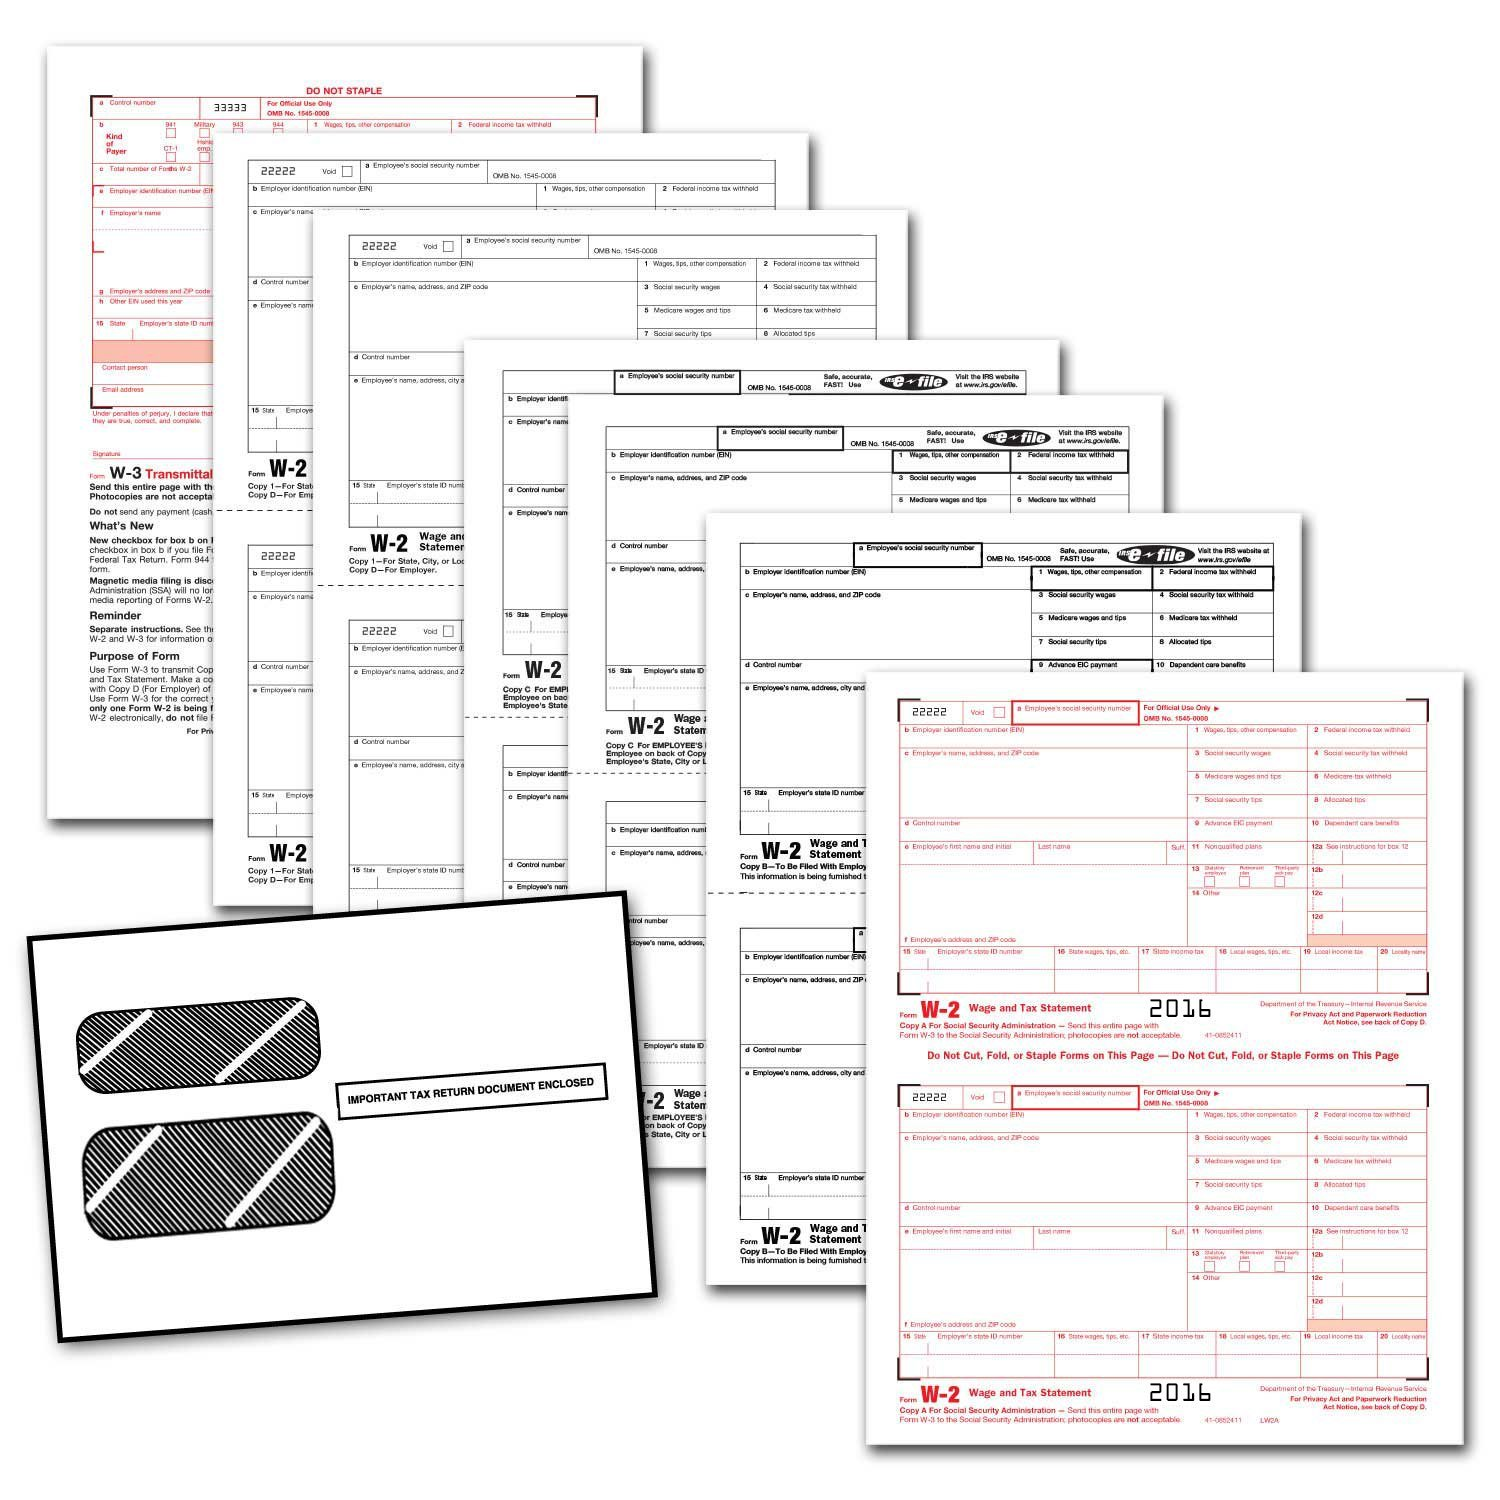 Lovely 1 Page Brochure Template Thin 10 Words To Put On Your Resume Shaped 1096 Form Template 1099 Form Template Youthful 16 Oz Tumbler Template Gray1st Job Resume Objective Amazon.com : W 2 Laser Forms (6 Part) Kit With Envelopes For 25 ..